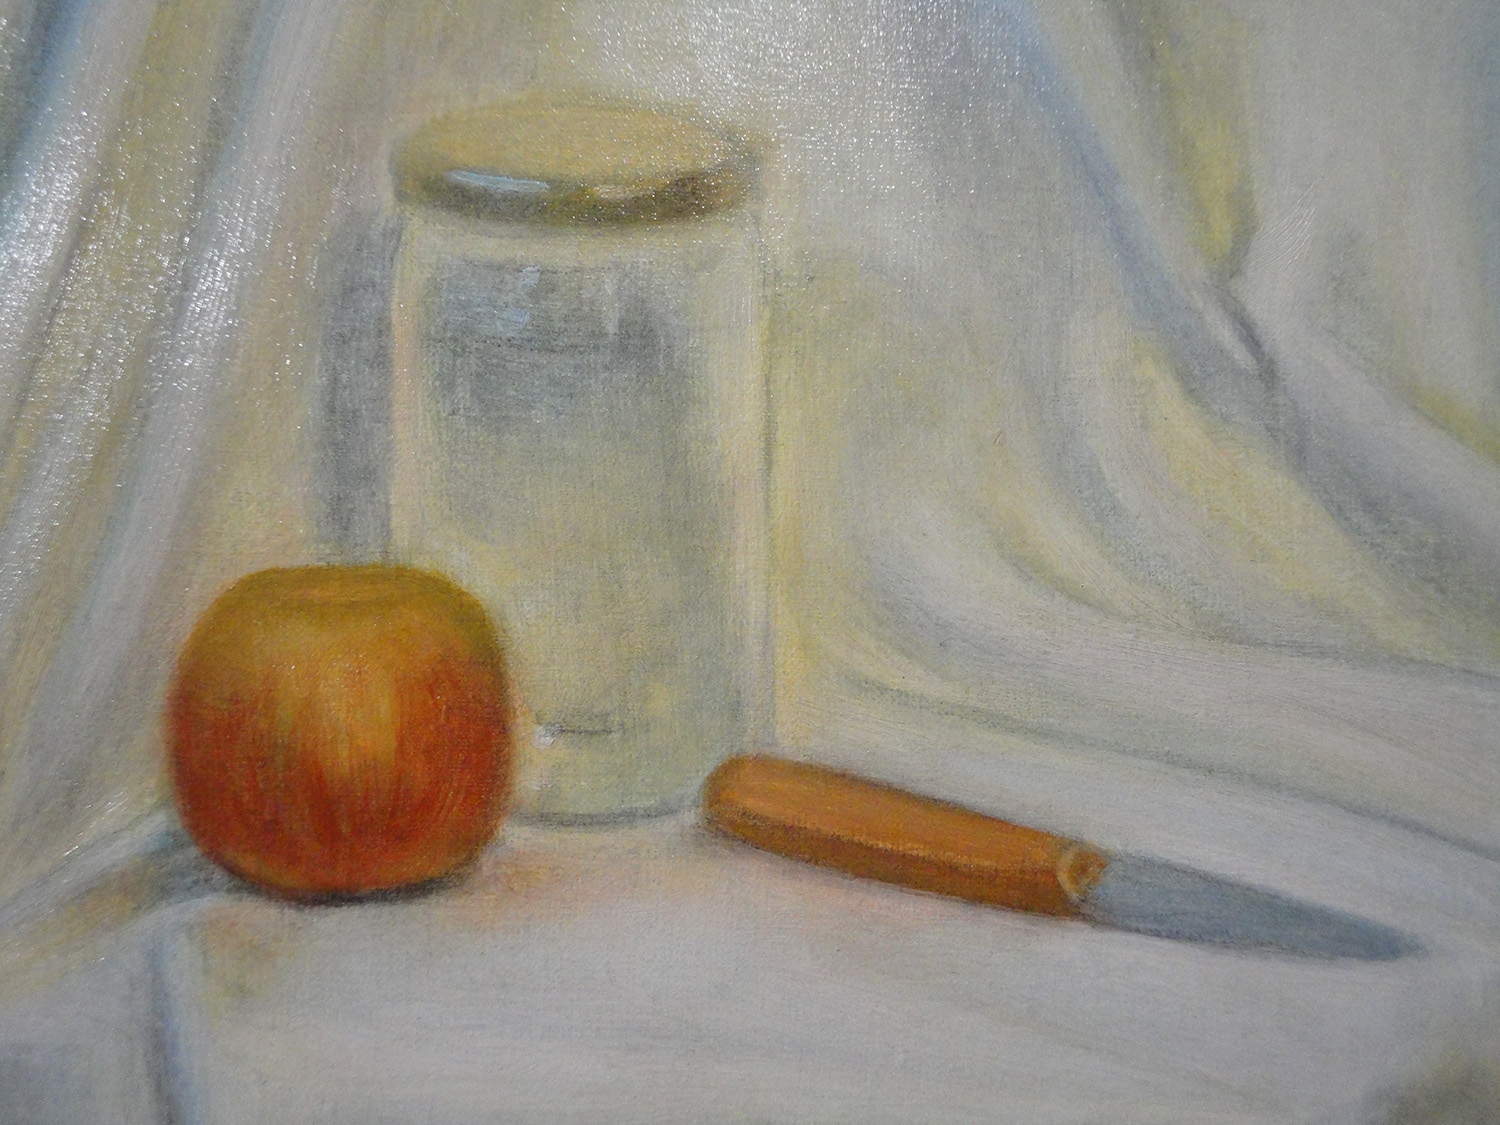 medium-emulsion-atelier-fontaines-atp-art-techniques-peinture-nature-morte-4.jpg